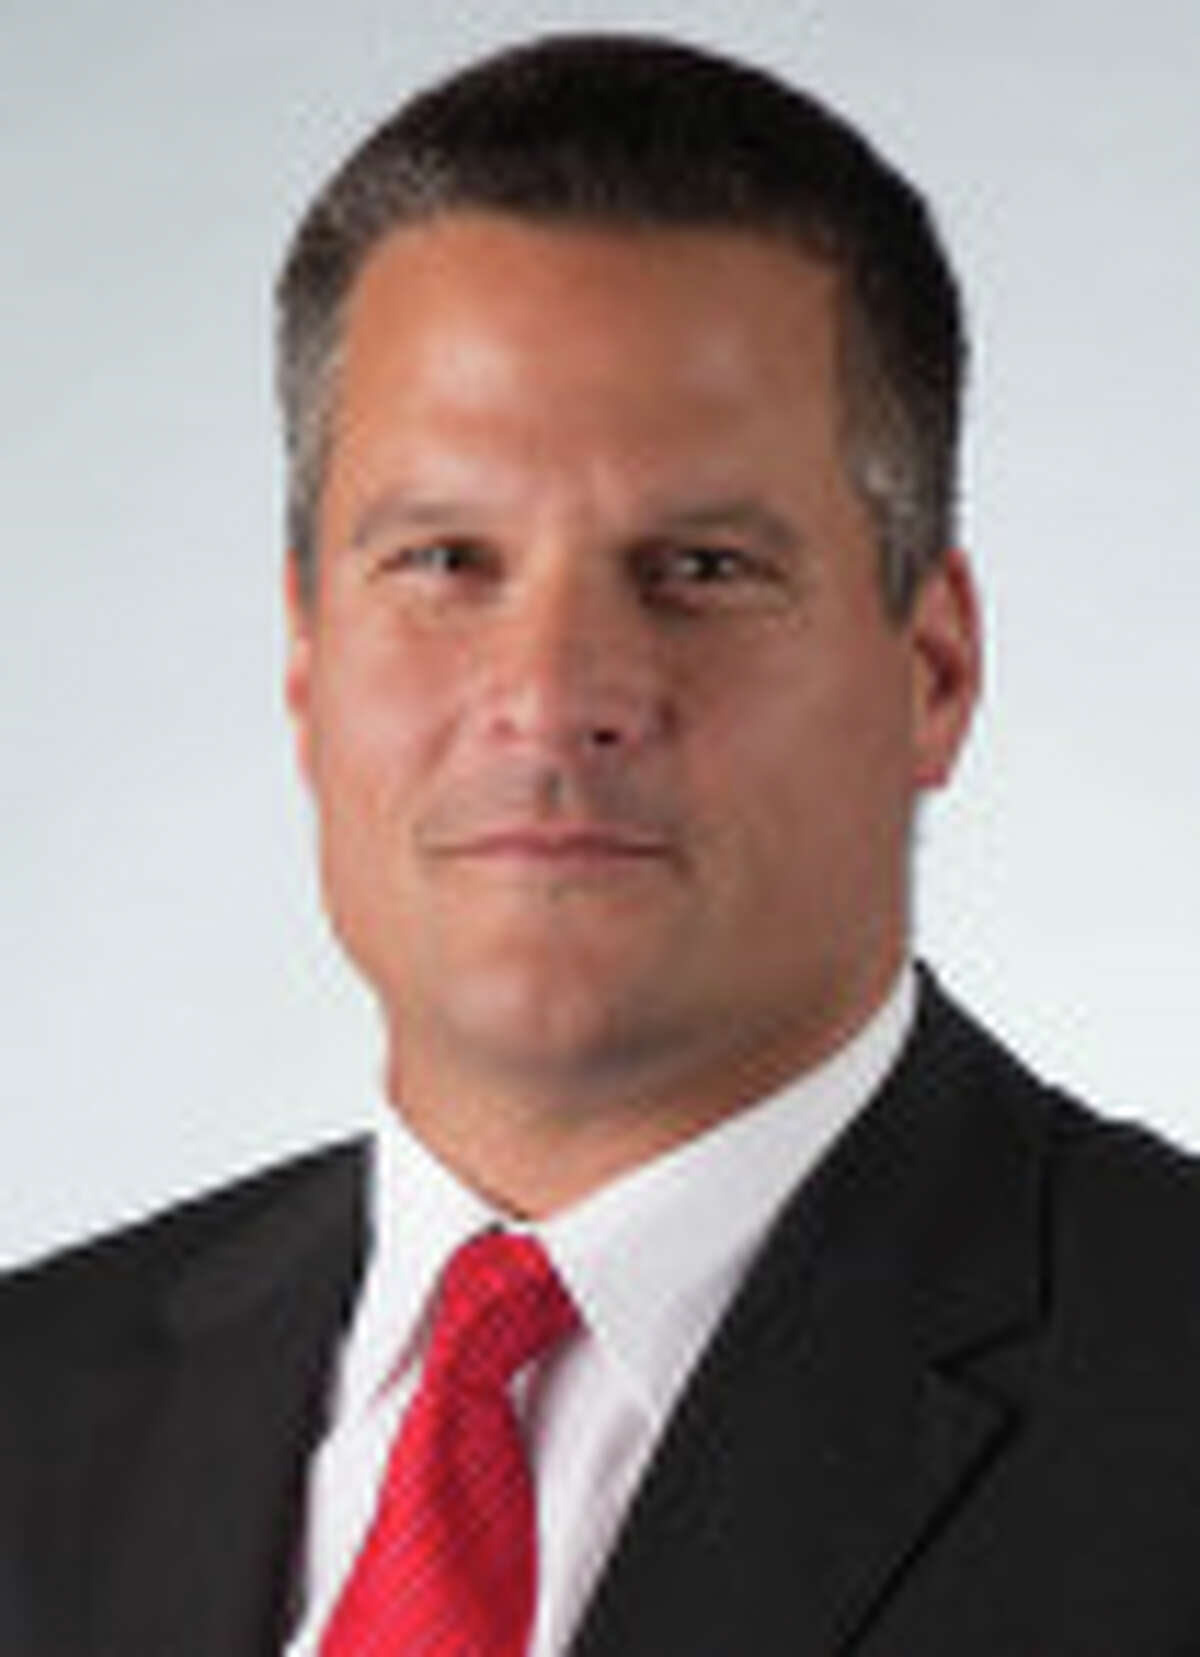 Todd Orlando Position: Defensive coordinator/linebackers Contract length: Two years Base salary: $501,000